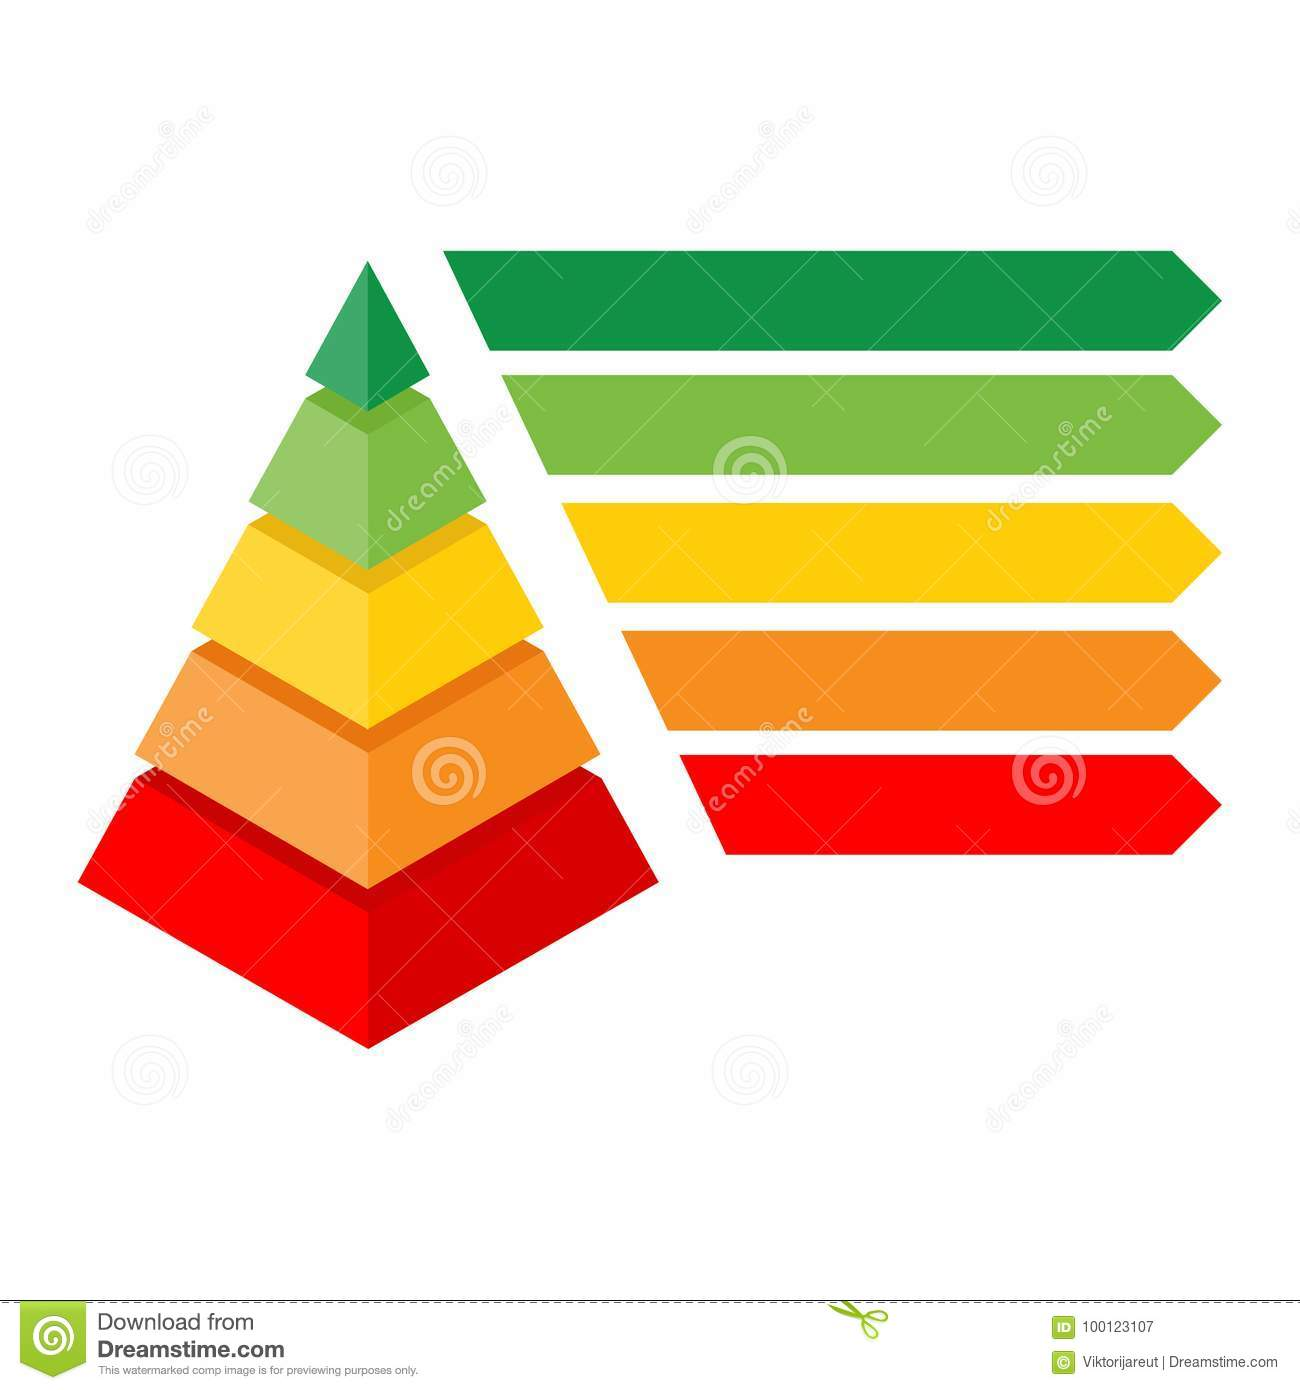 Isometric Pyramid Chart Stock Illustration Of Diagram The Purpose An Is To